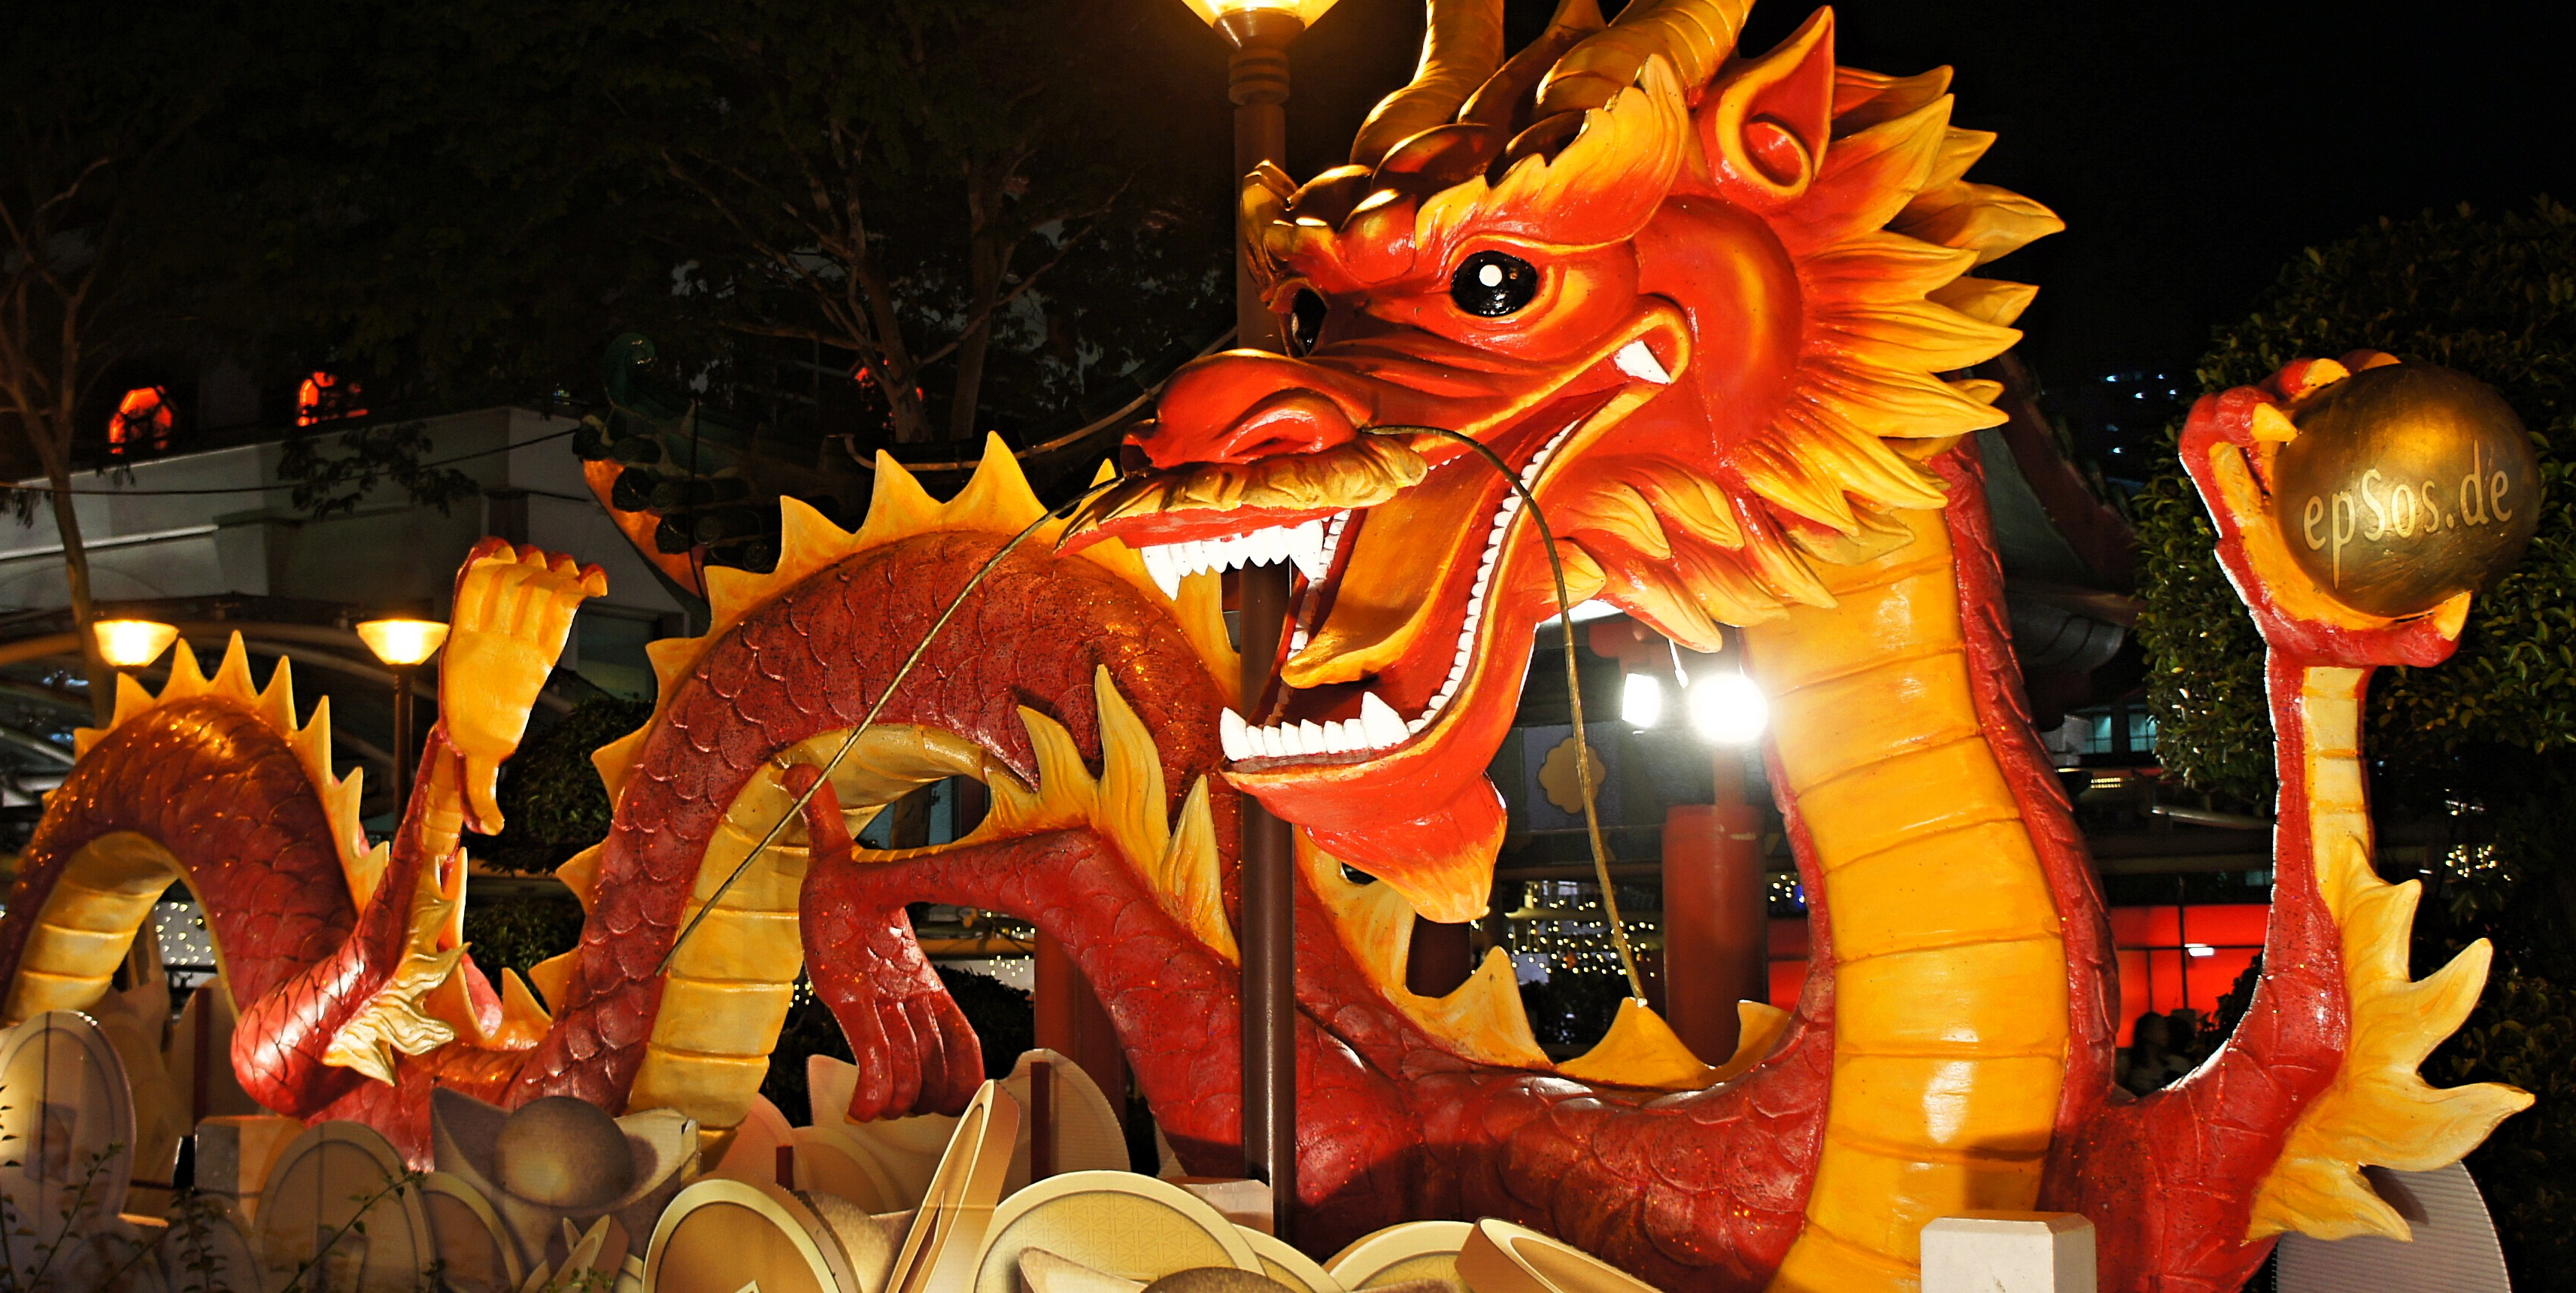 chinese new year dragon picture - The Chinese New Year